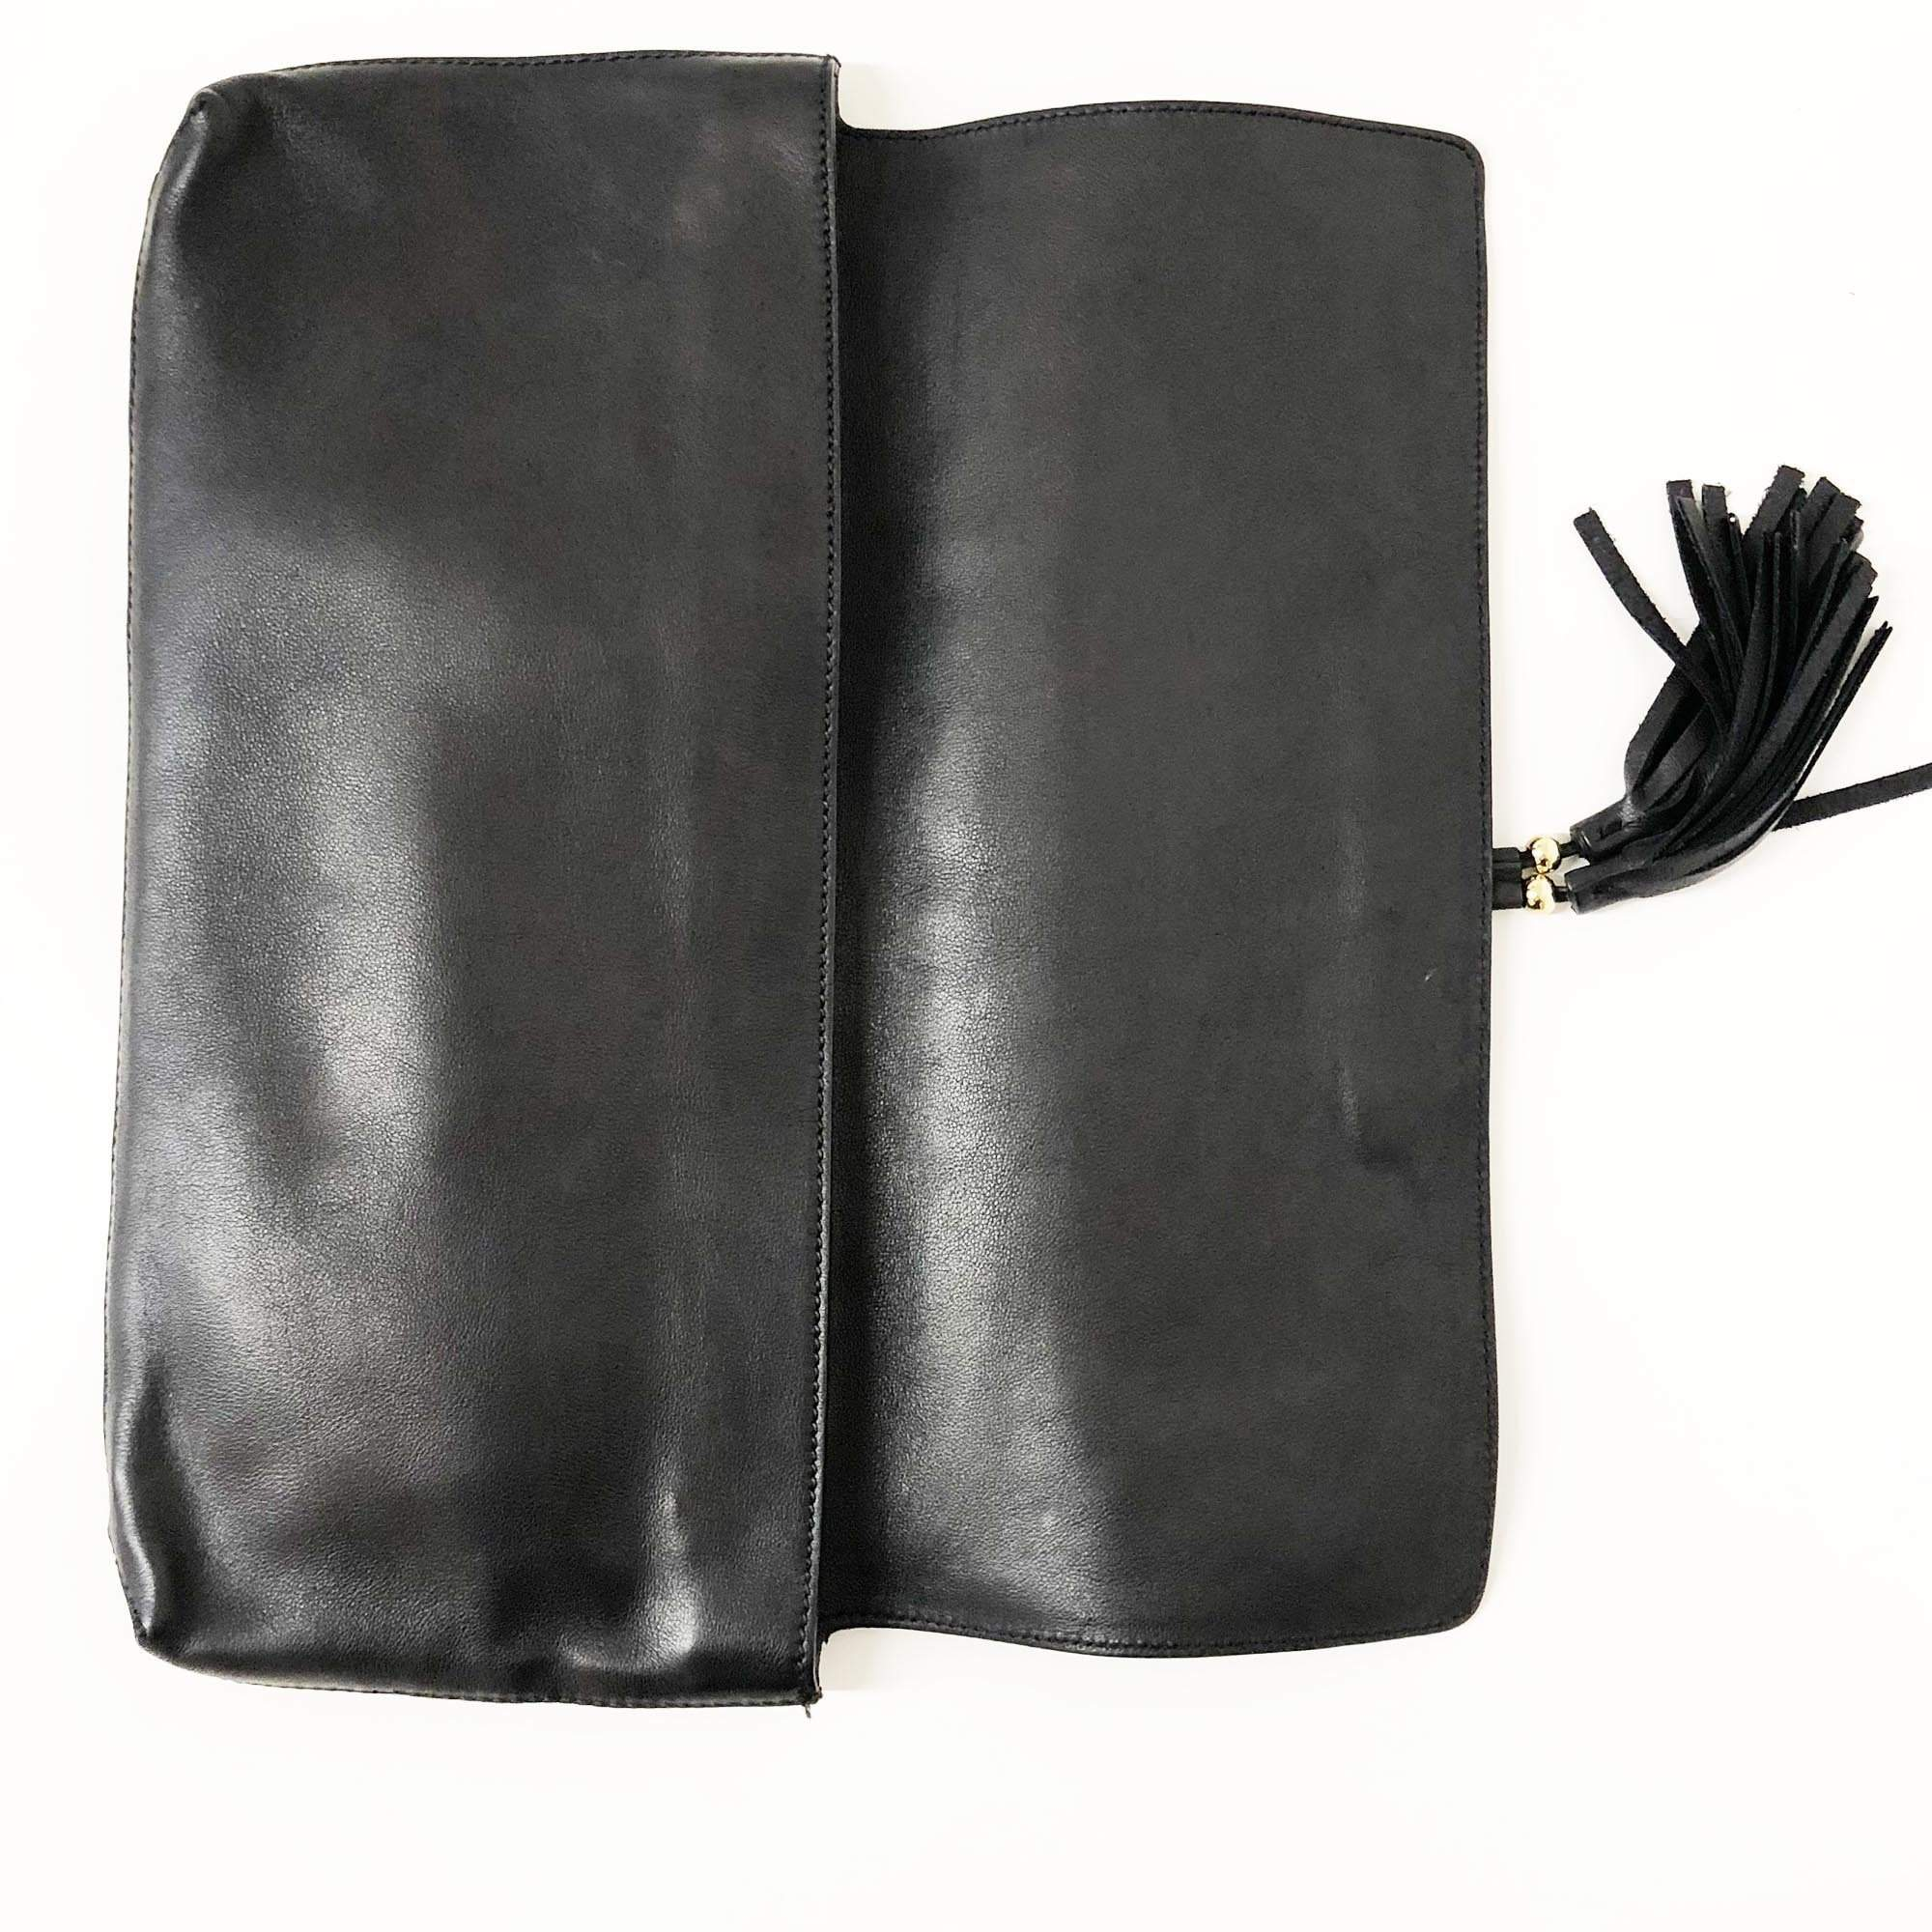 Gucci Horsebit Leather Clutch